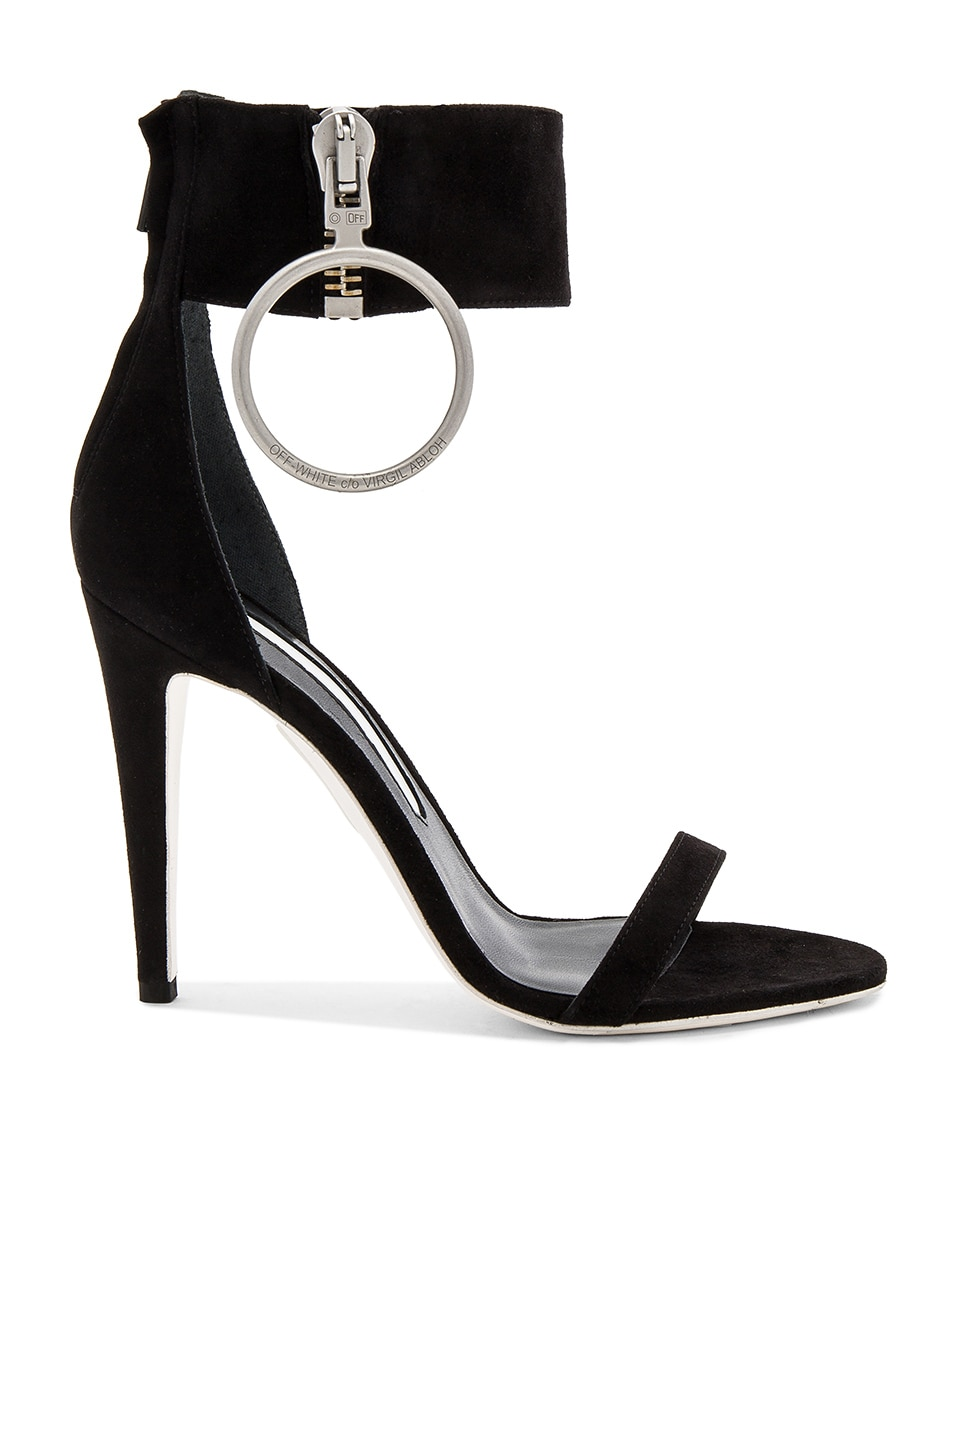 OFF-WHITE Zipped High Sandal Heel in Black